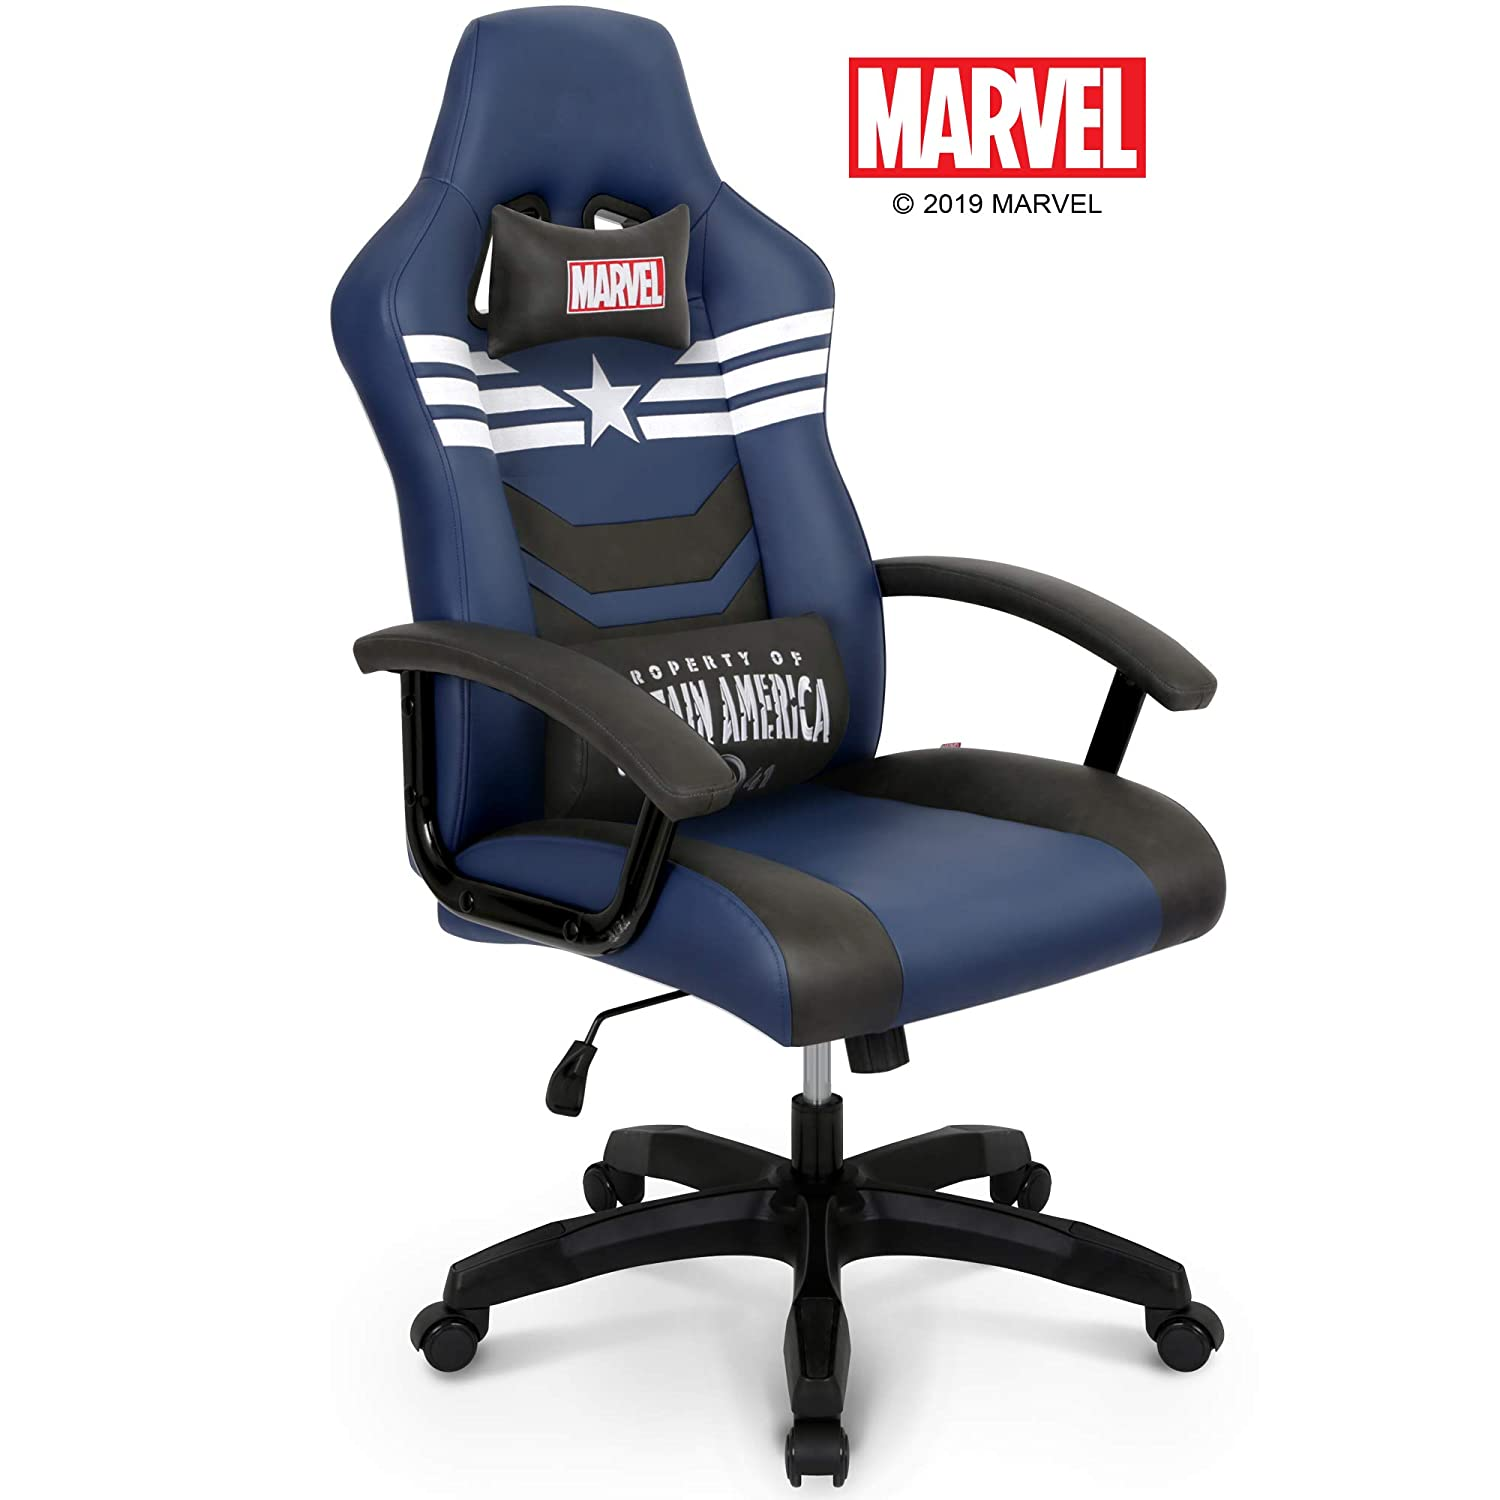 Marvel Avengers Captain America Big Wide Heavy Duty 330 lbs Gaming Chair Office Chair Computer Racing Desk Chair Blue White – Endgame Infinity War Series, Marvel Legends